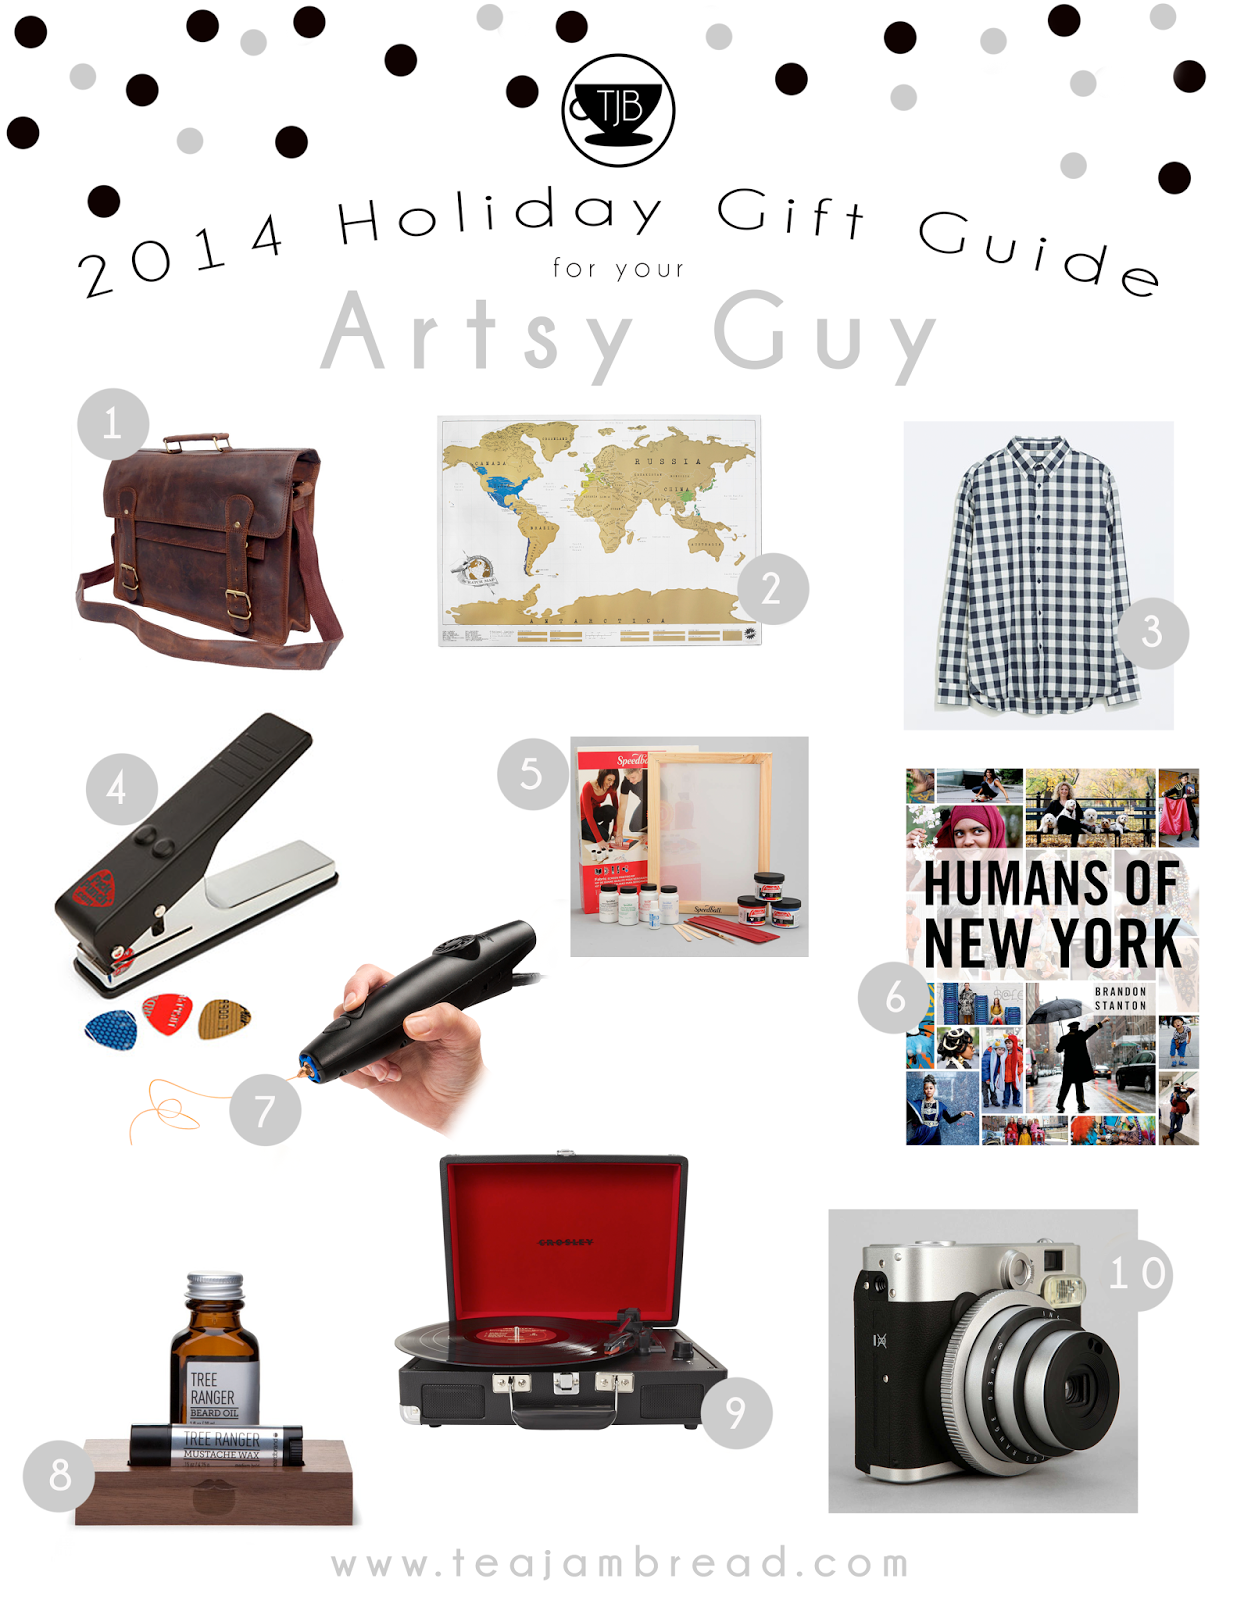 2014 Holiday Gift Guide Artsy Guy